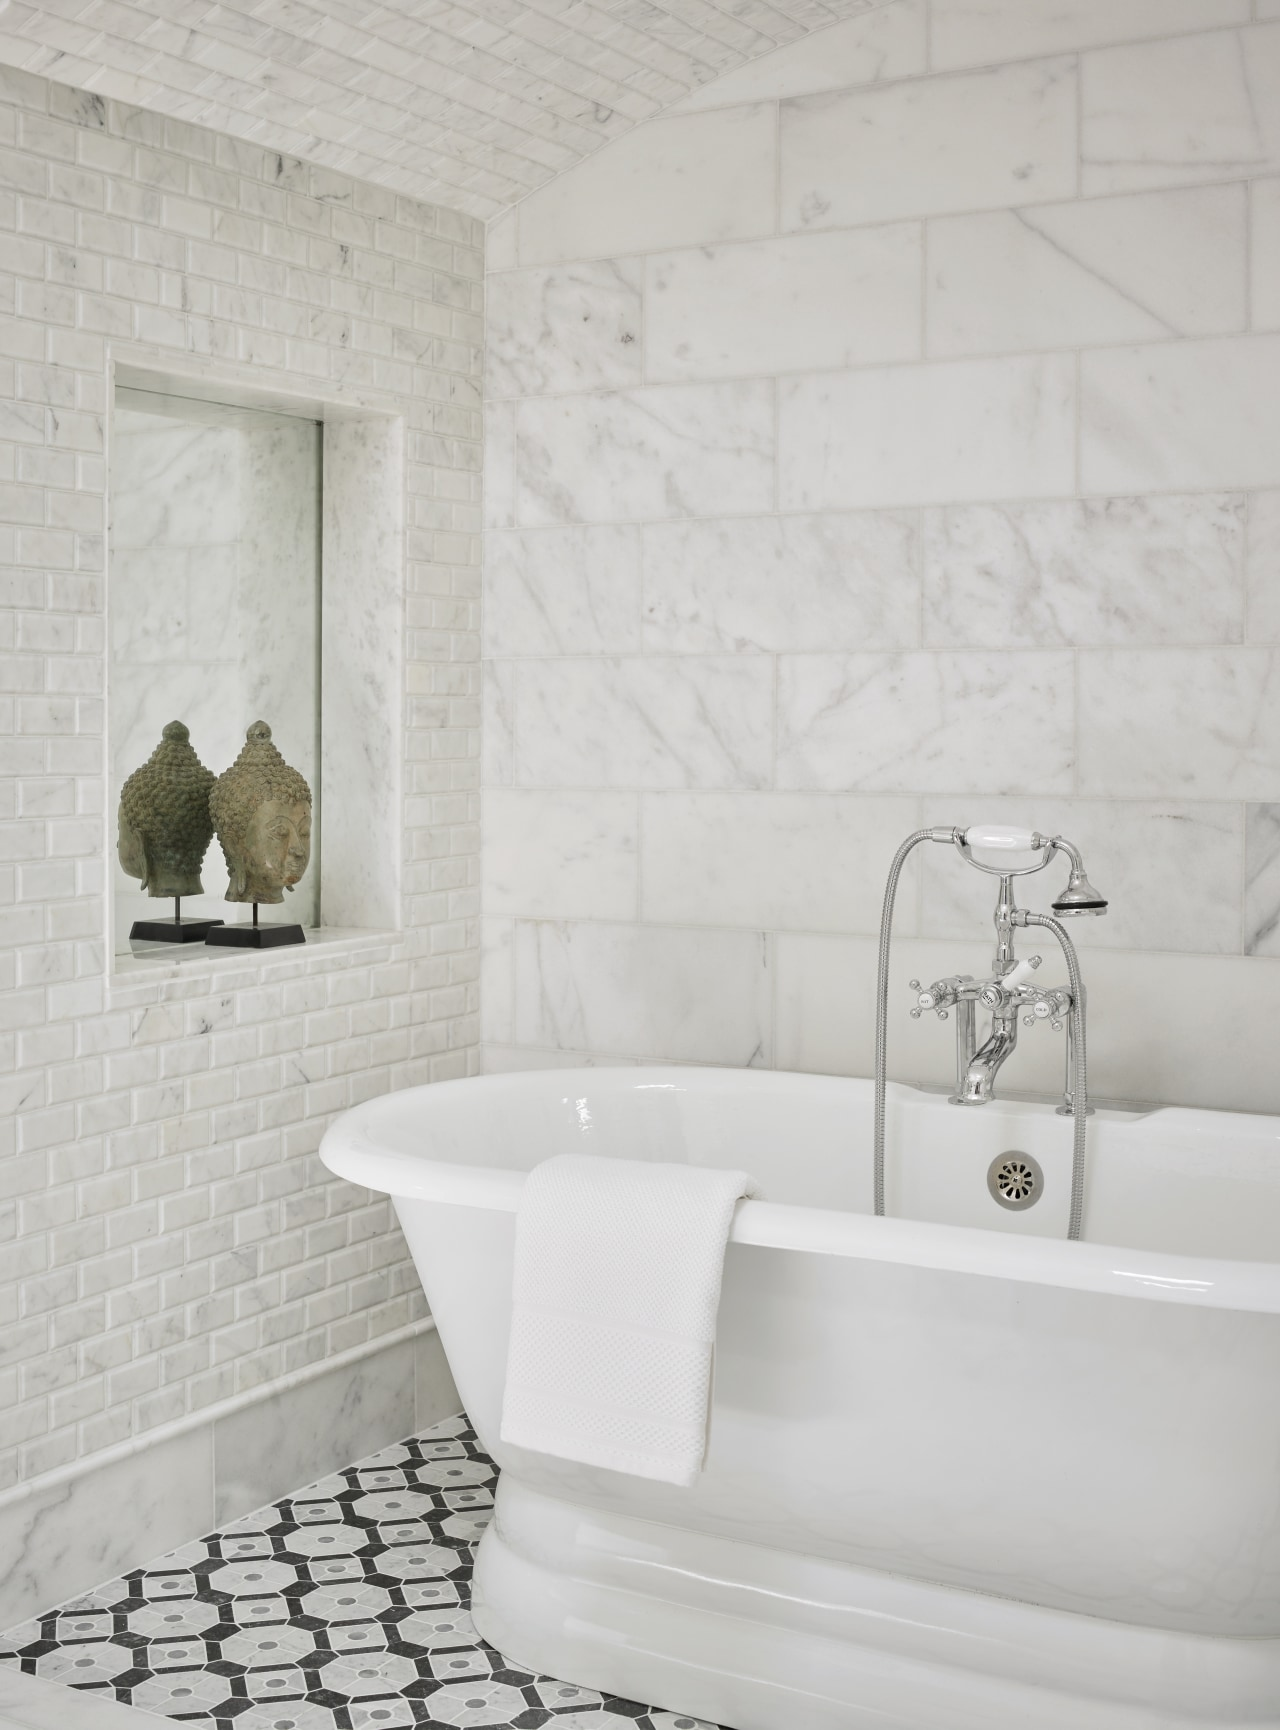 Photography by: Emily Followill bathroom, ceramic, flooring, home, plumbing fixture, tap, tile, freestanding bath, master site, tiles, Mark Williams Design